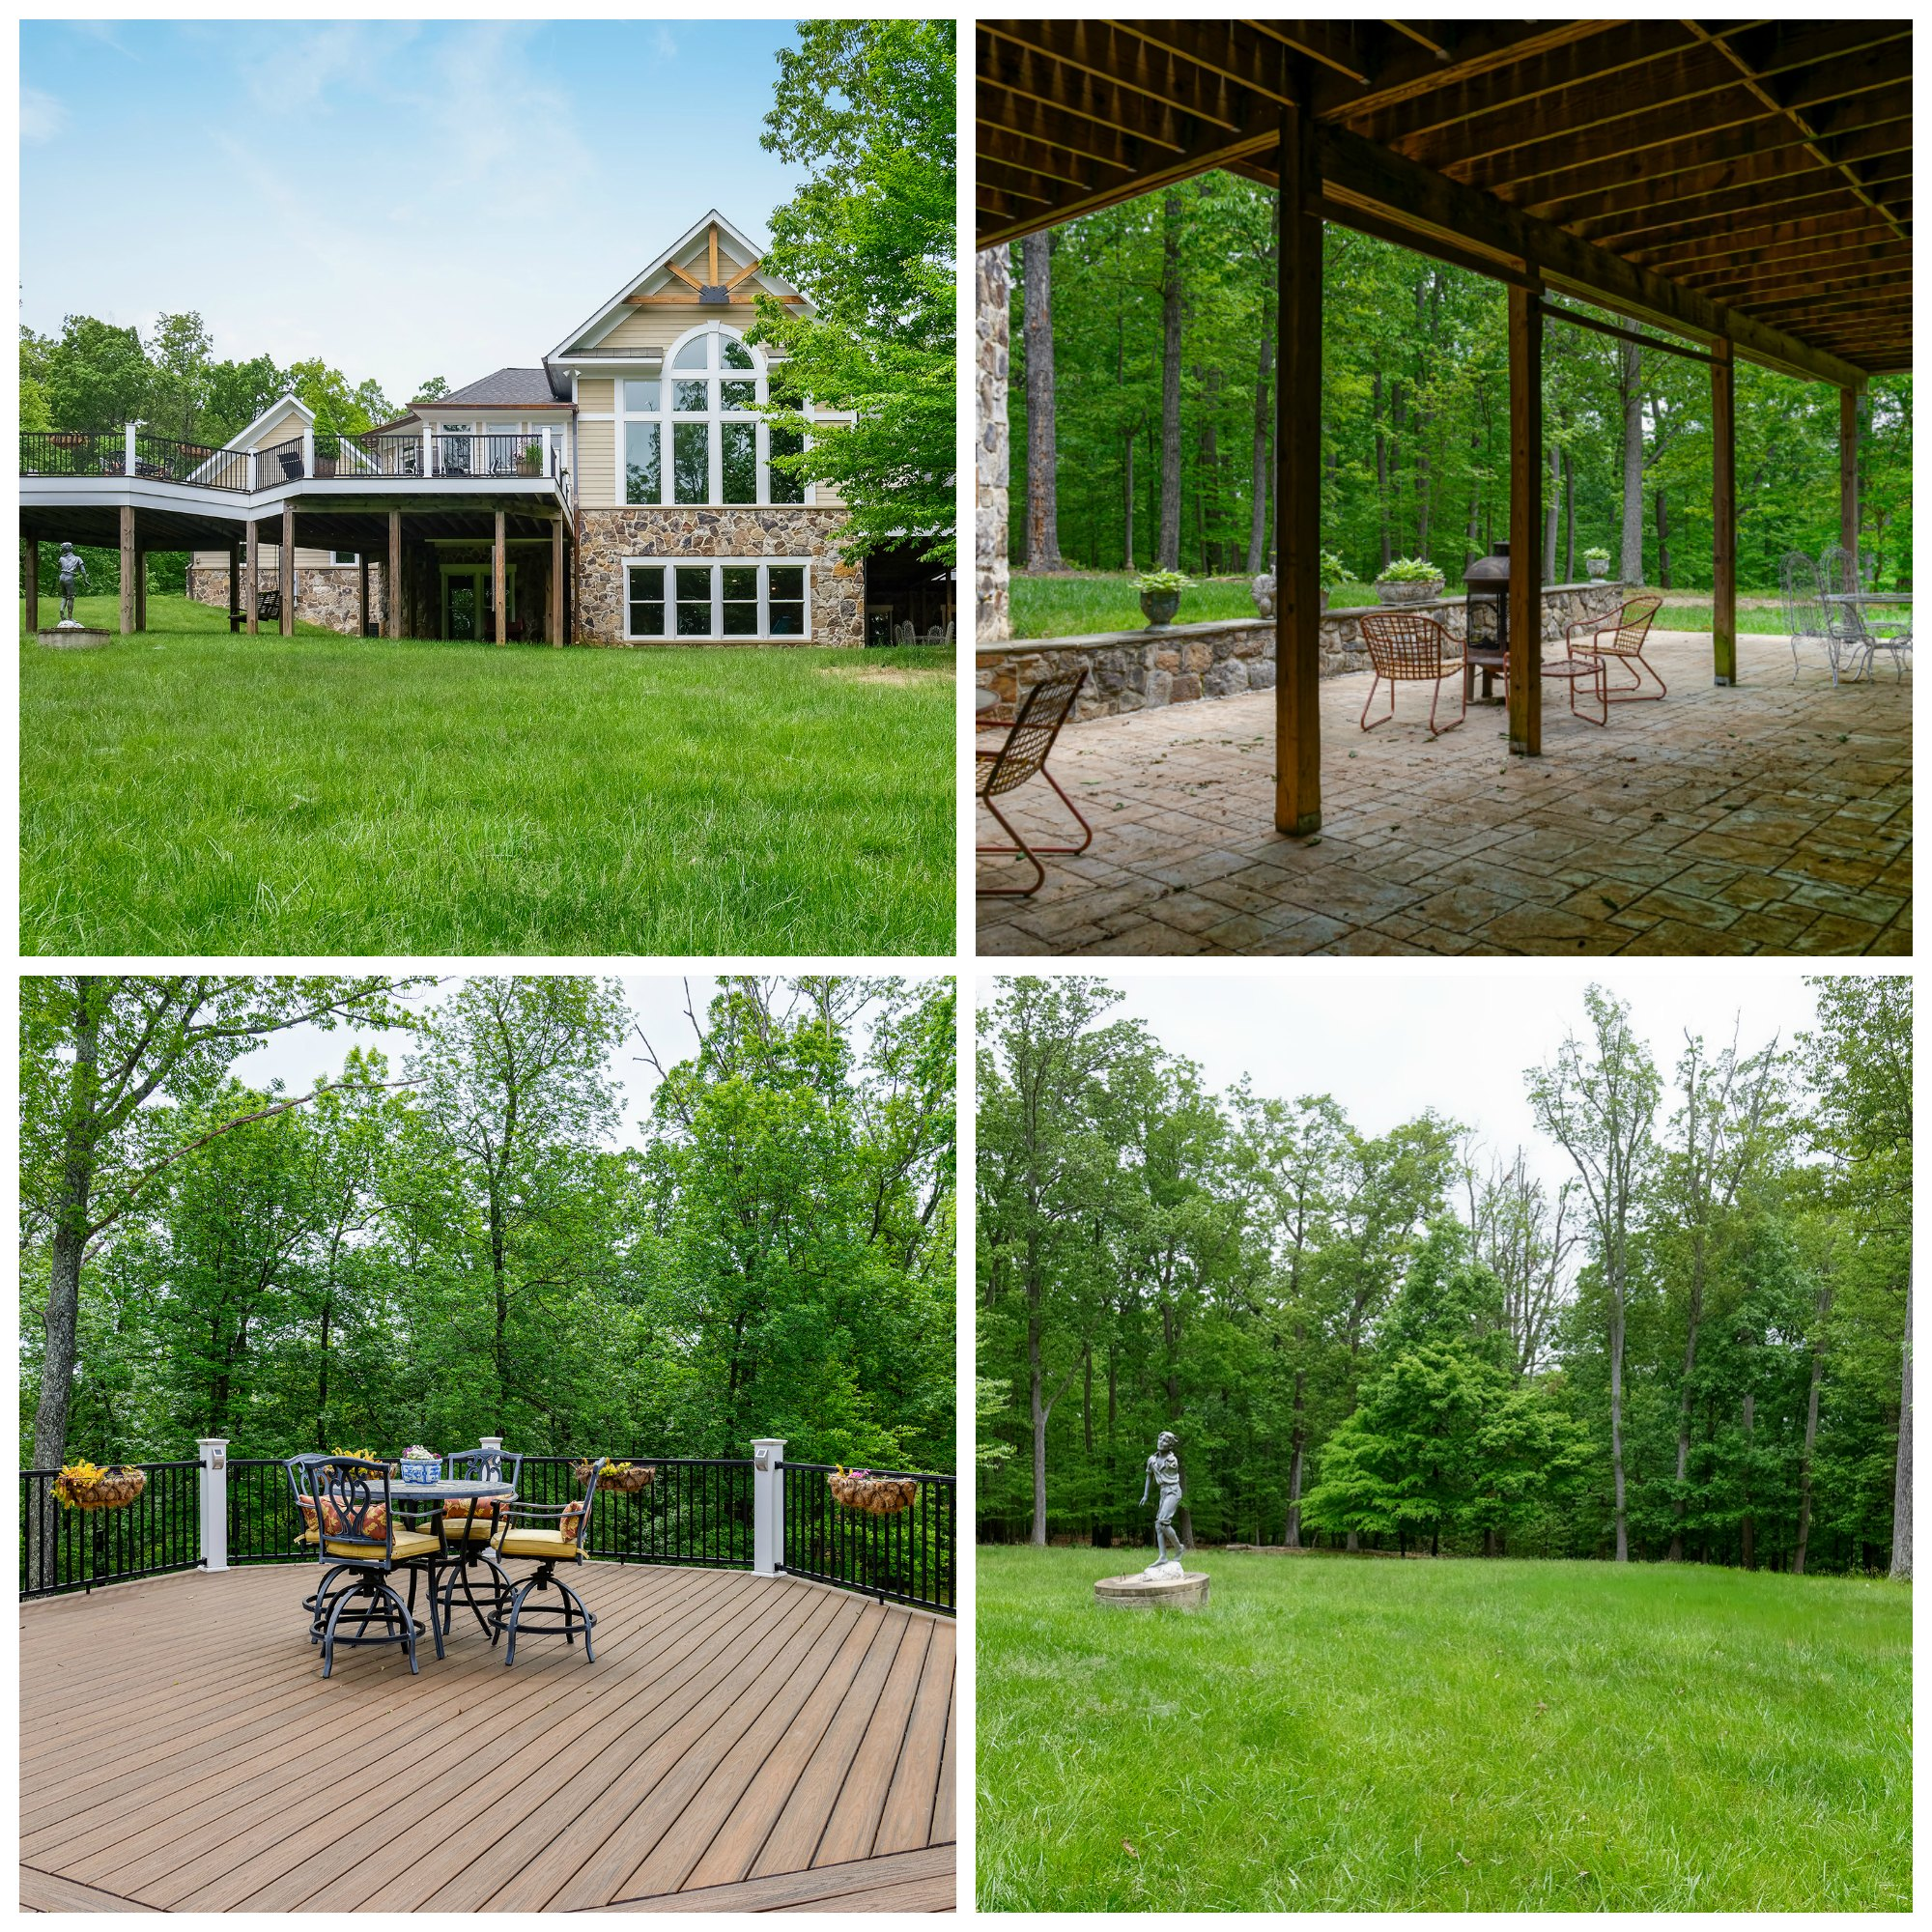 41430 Fox Creek Ln, Raspberry Falls- Decks, Patio, and Yard